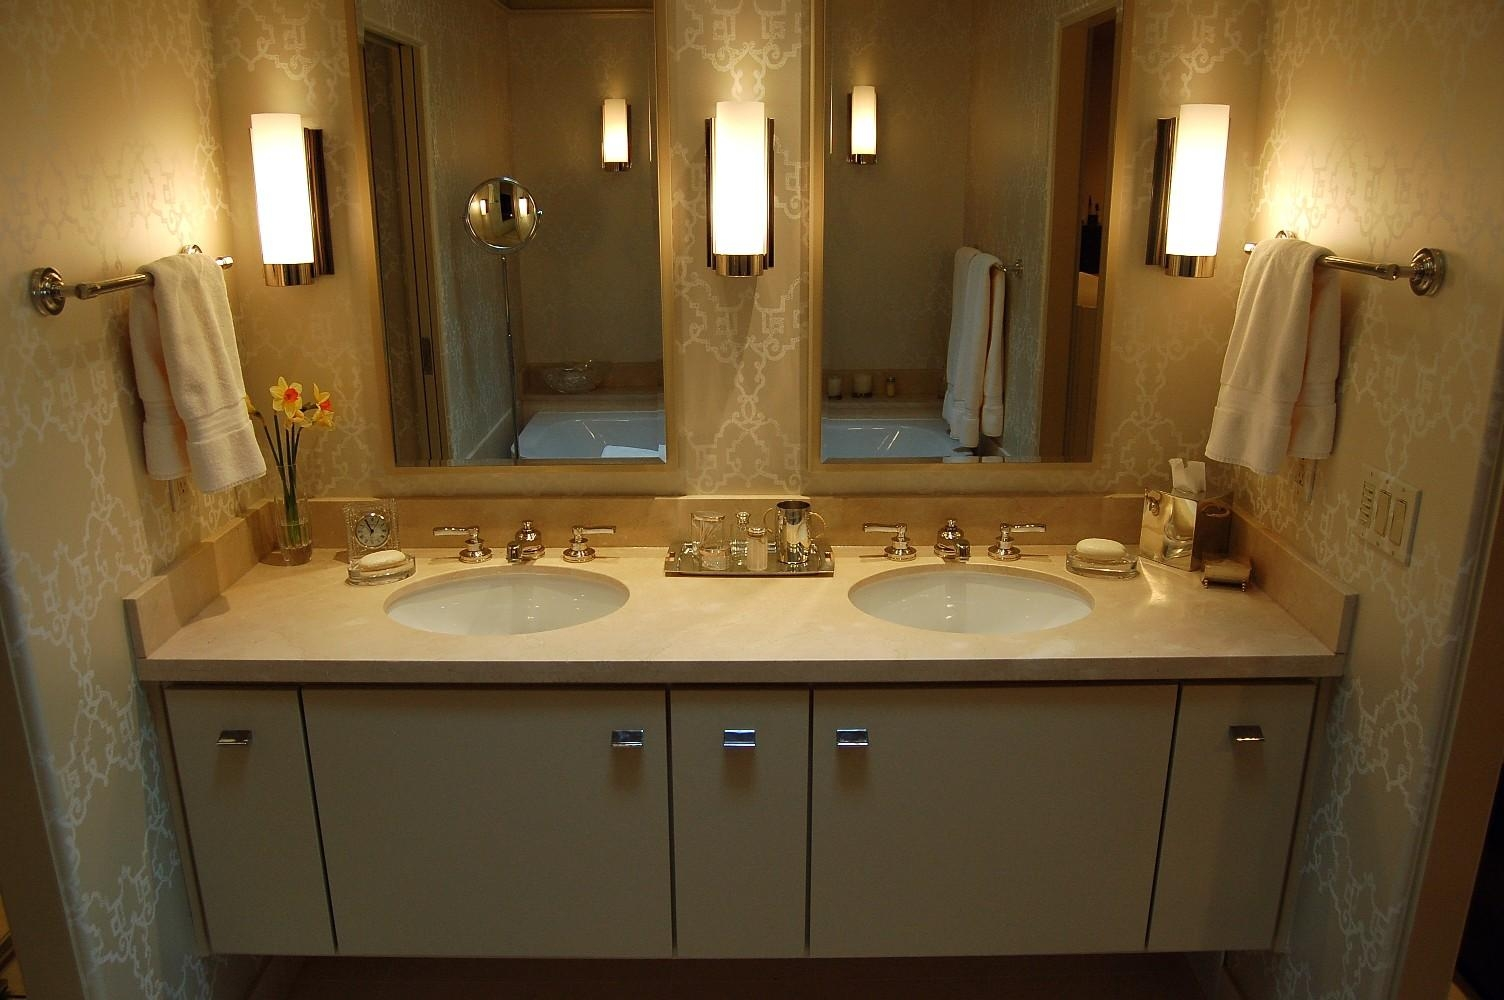 Bathroom Mirror Ideas For Double Vanity Gallery And Mirrors Images Inside Double Vanity Bathroom Mirrors (View 18 of 20)